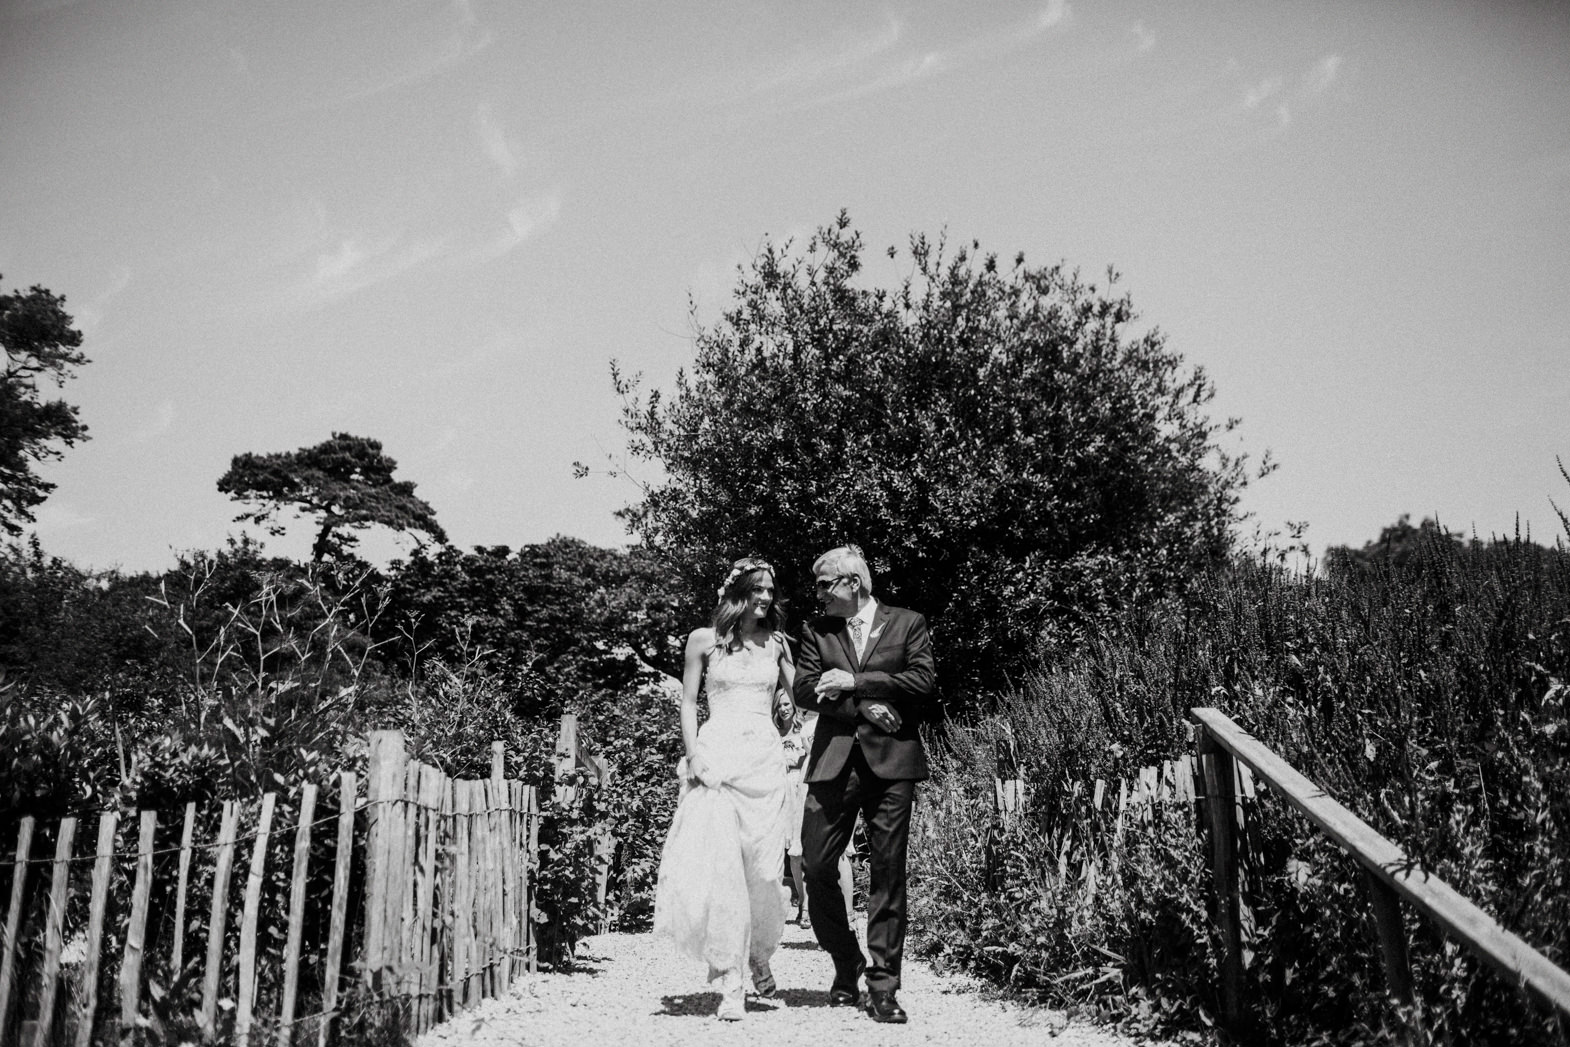 WEDDING PHOTOGRAPHy AT NANCARROW FARM (66).jpg